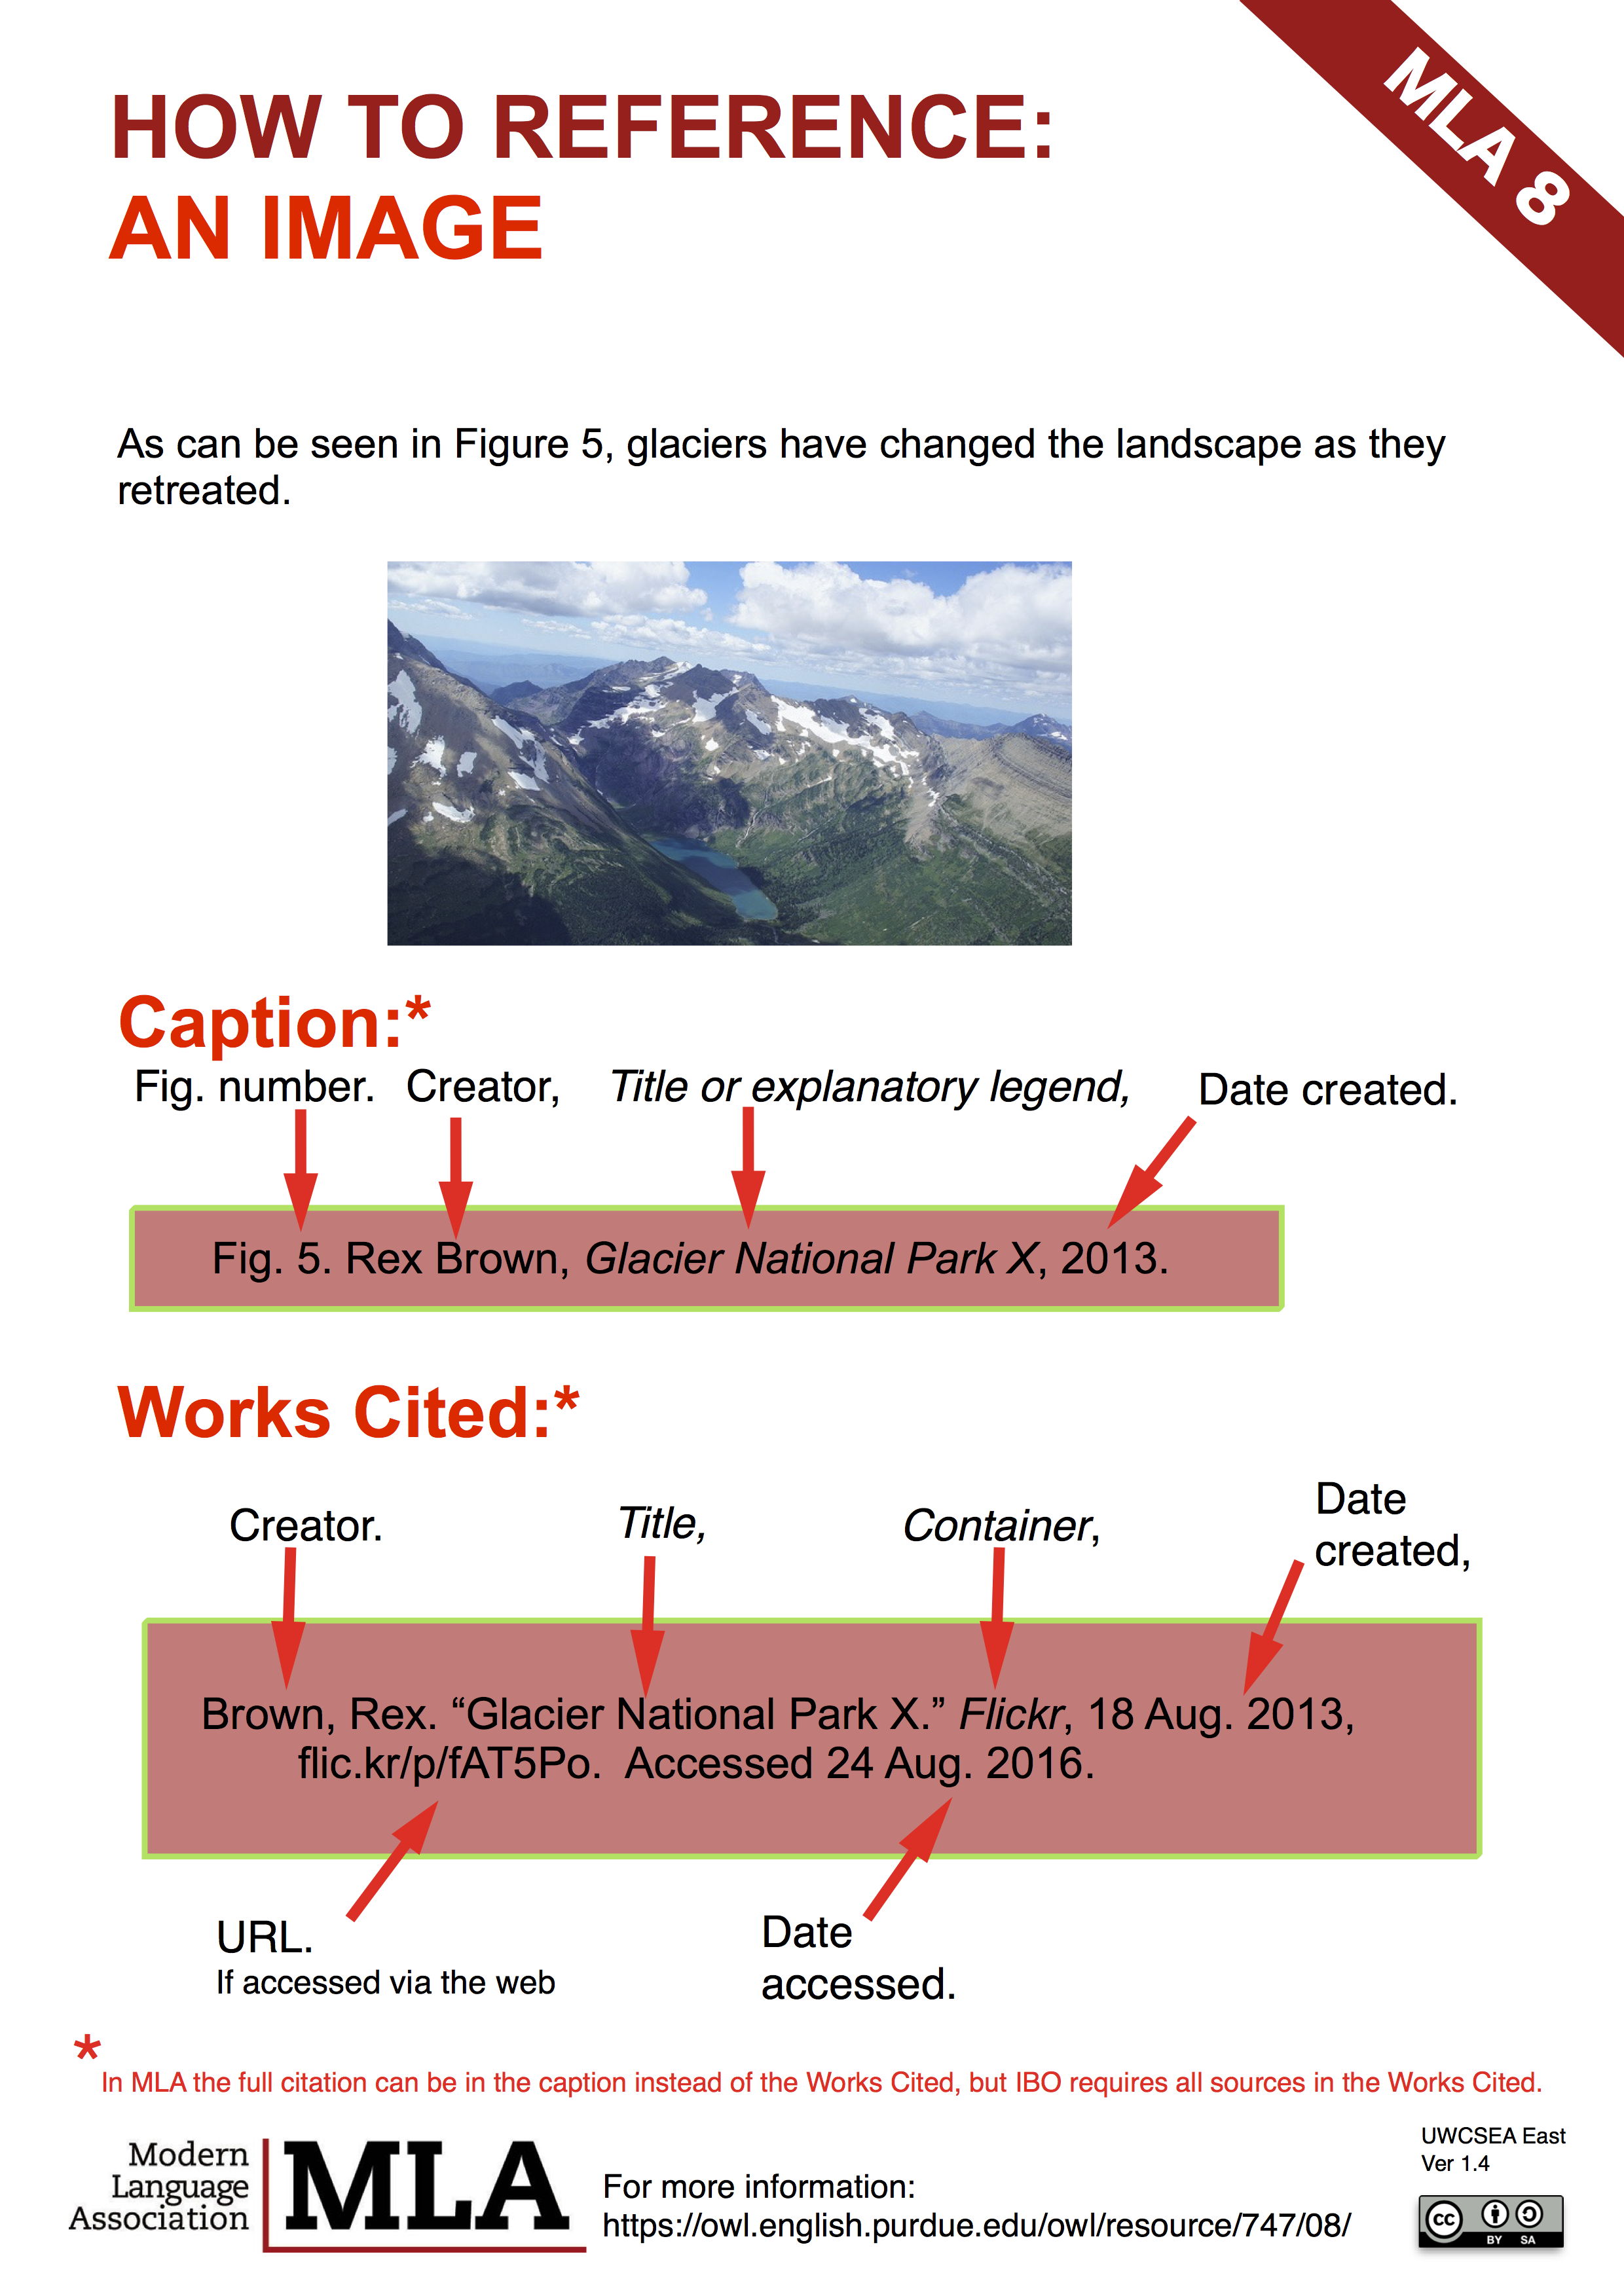 Mla8 Poster Full Guide Libguide At Canadian International School Singapore Academic Writing Work Cited How To In Text Citation A Website Without Author